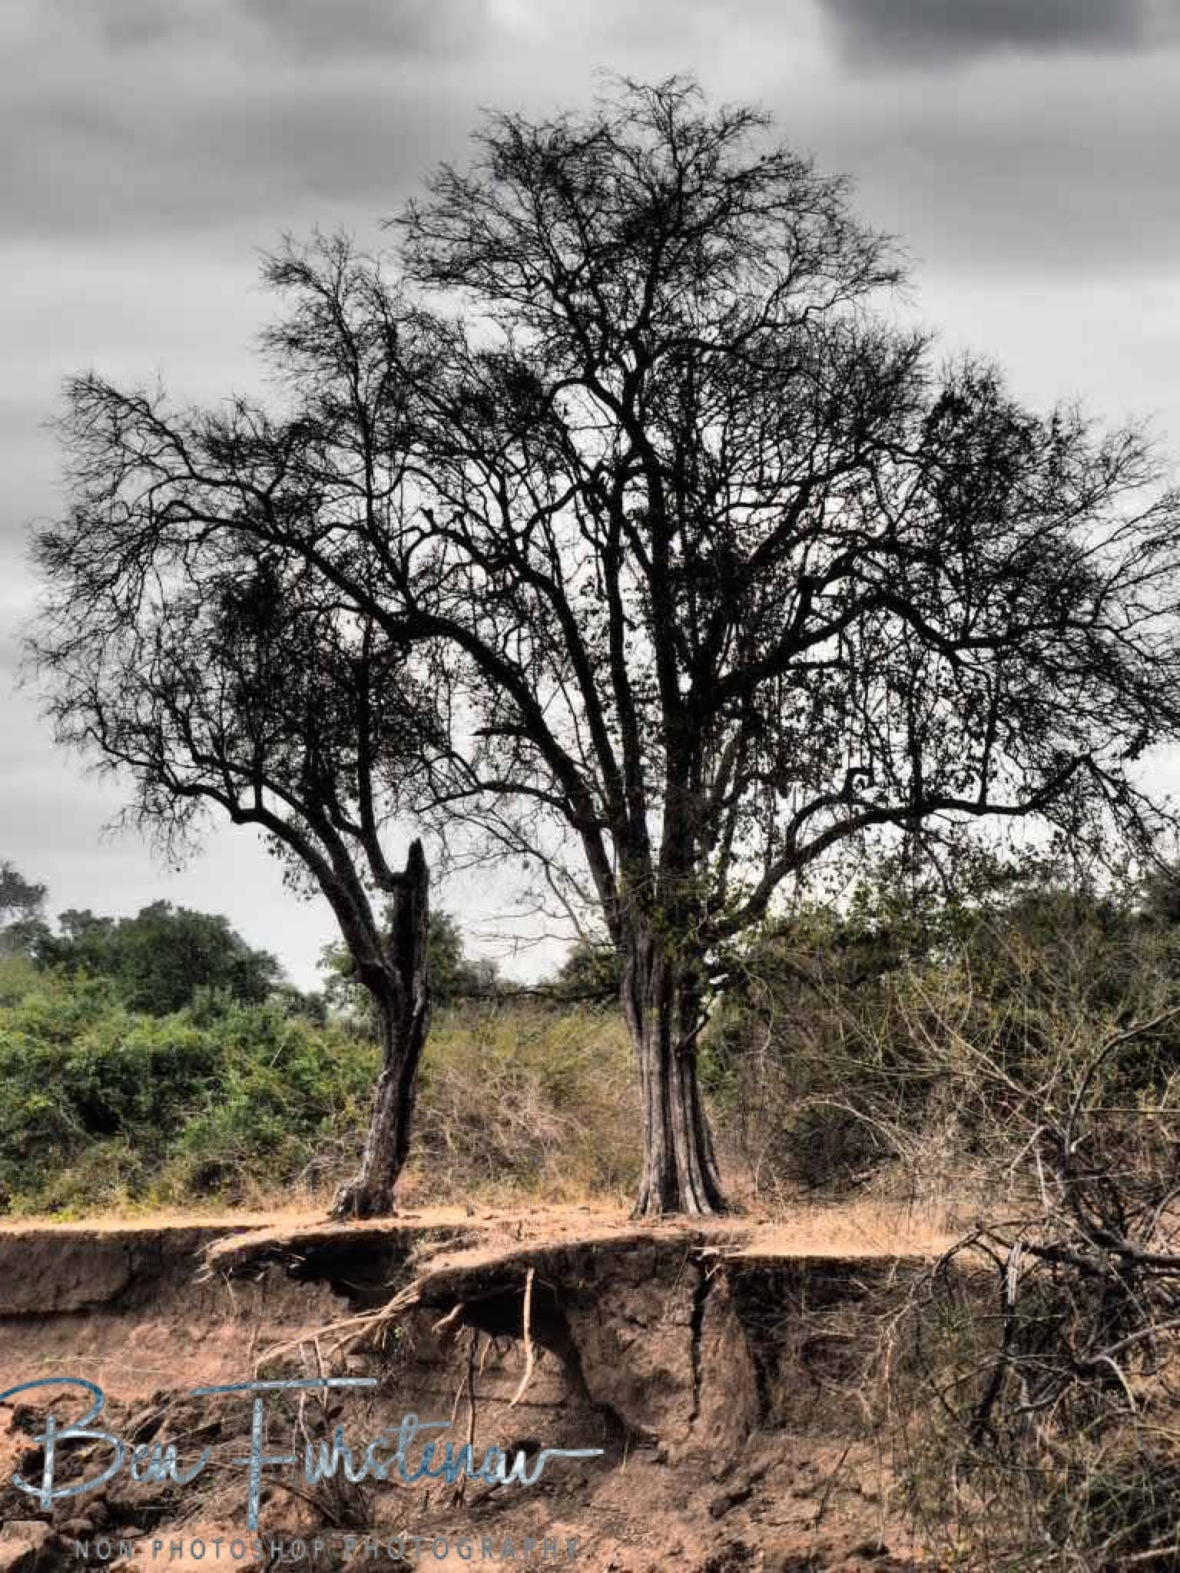 Still standing on the edge, South Luangwa National Park, Zambia